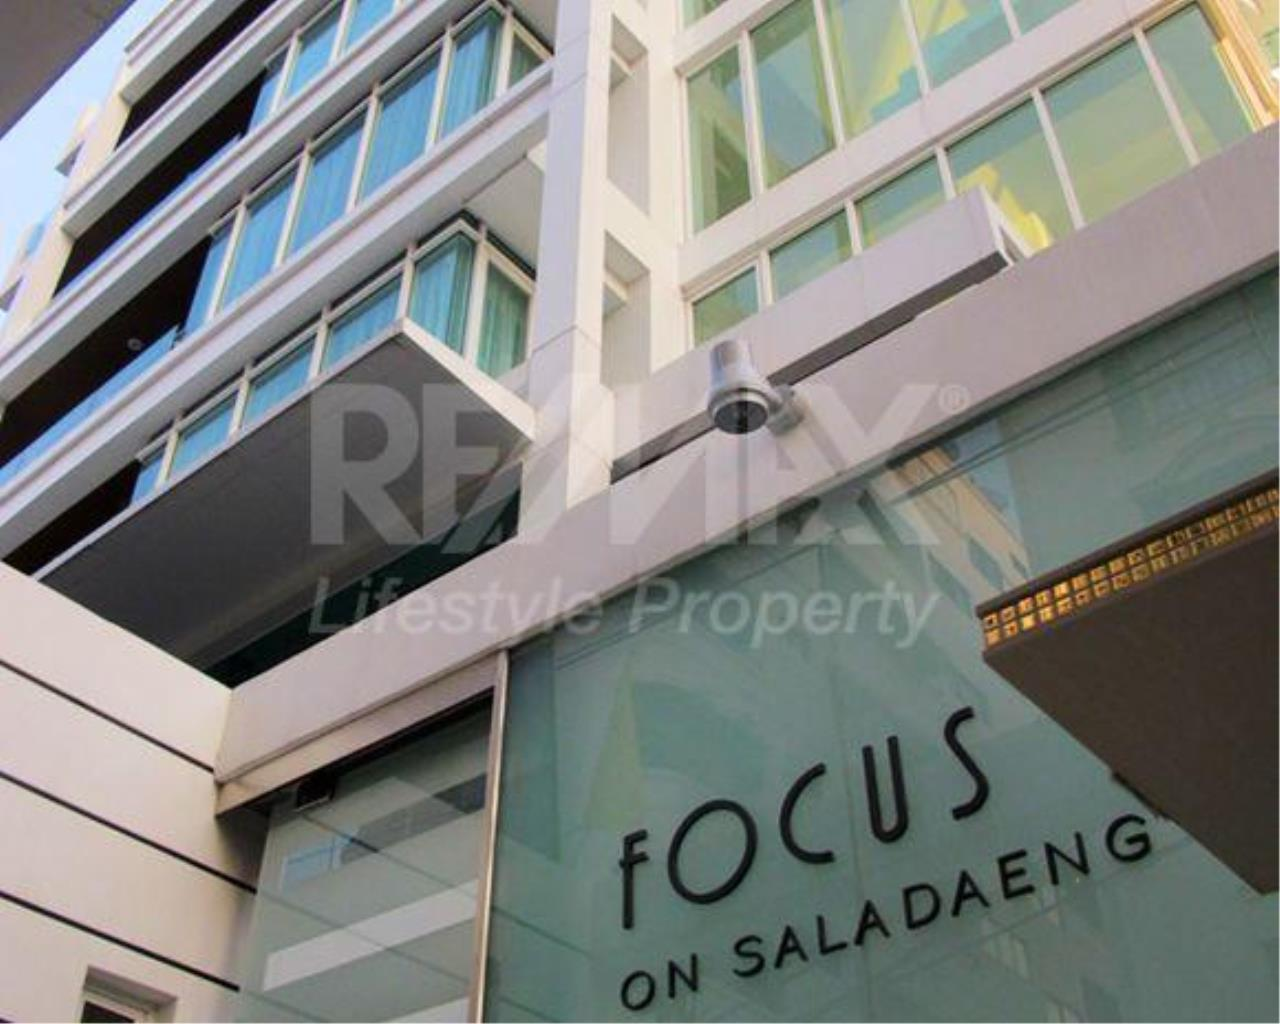 RE/MAX LifeStyle Property Agency's Focus on Saladaeng 1